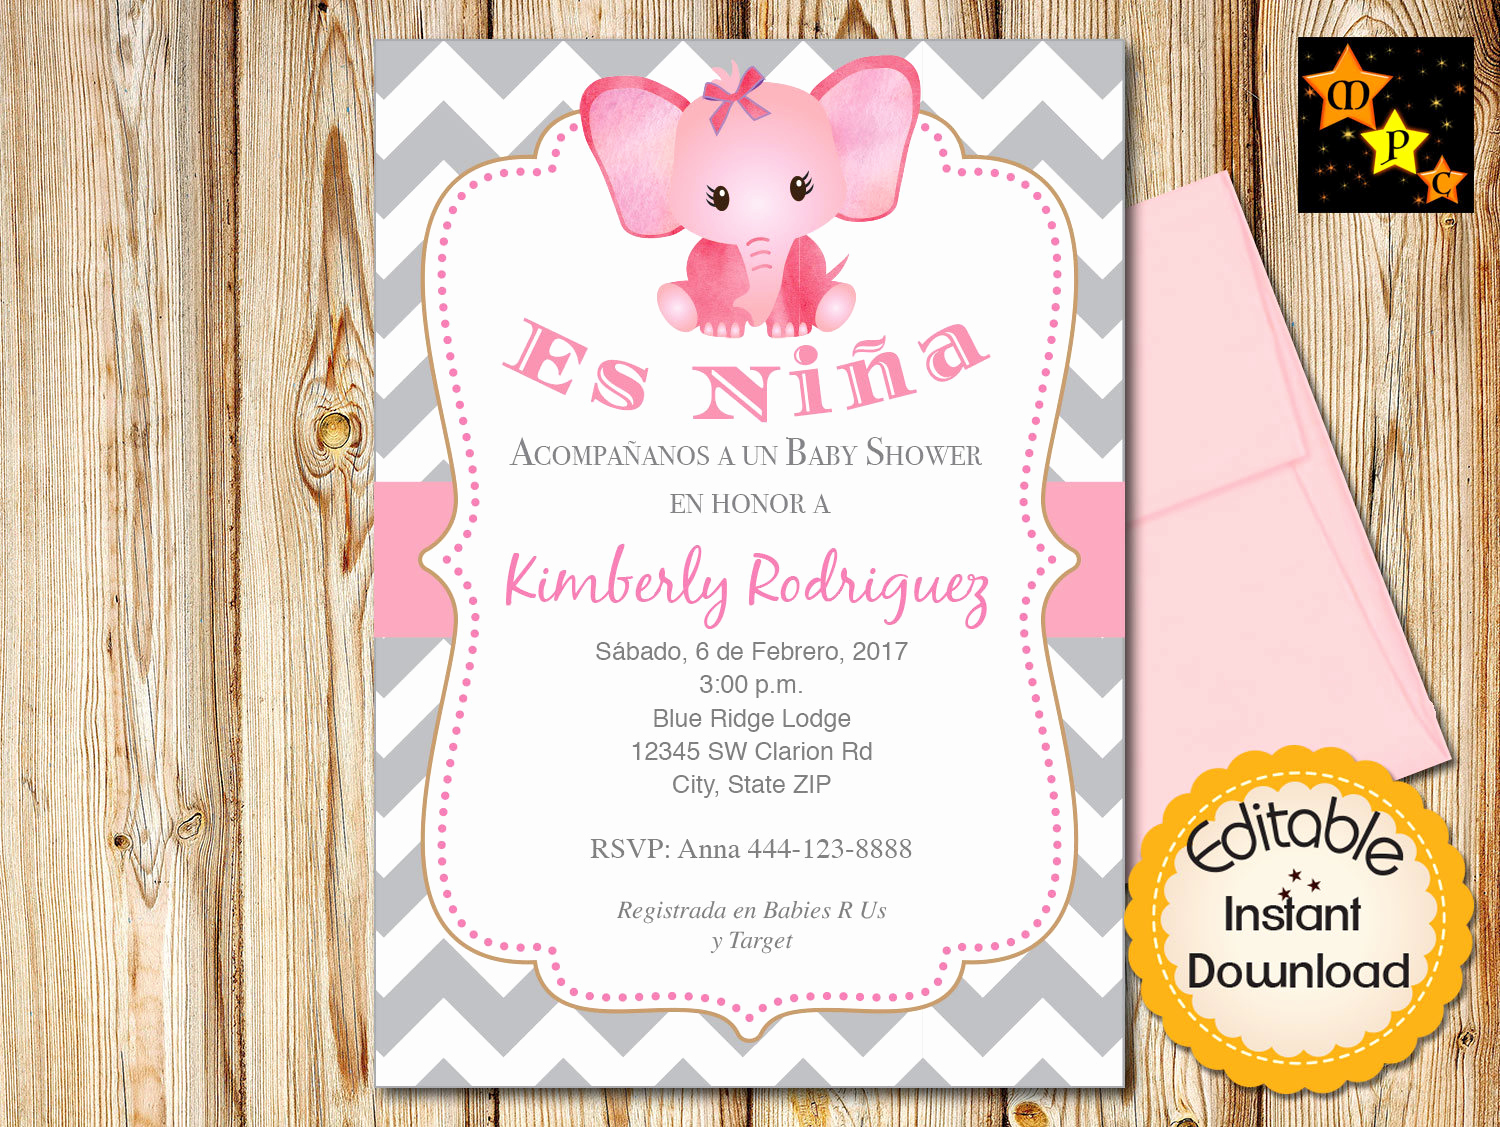 Spanish Baby Shower Invitation Inspirational Spanish Baby Shower Invitation Girl Pink Elephant Gray